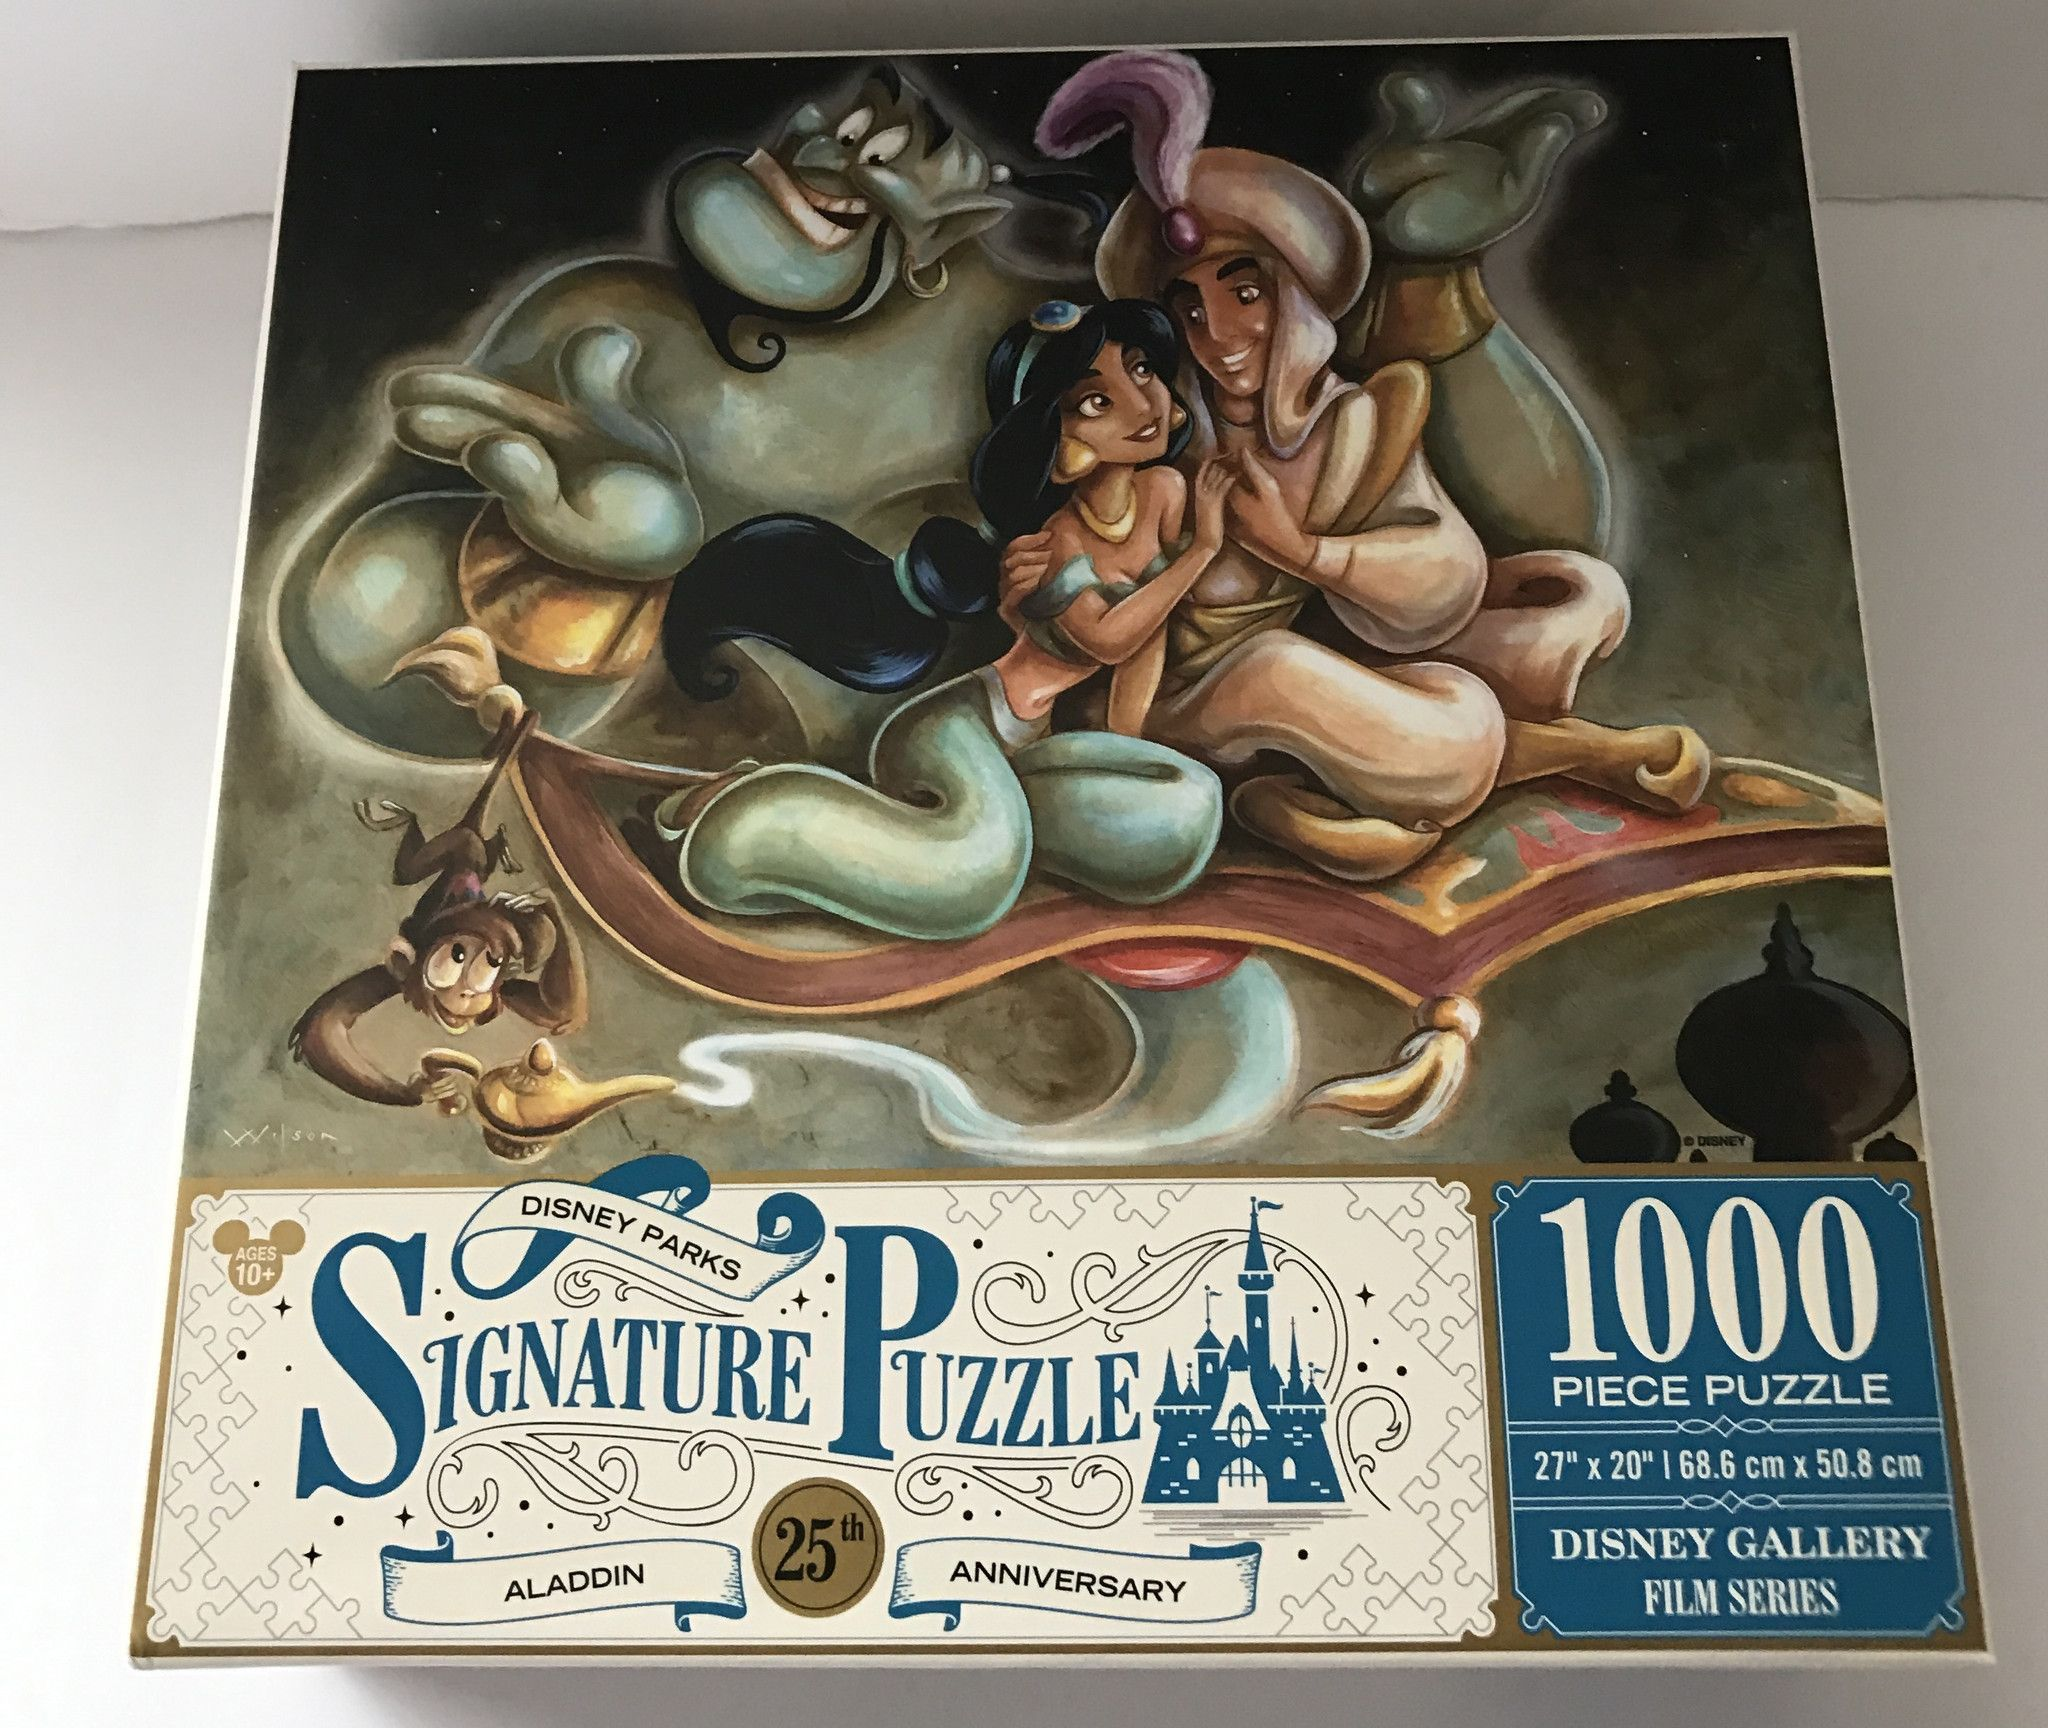 DISNEY PARKS SIGNATURE PUZZLE BEAUTY AND THE BEAST 25TH ANNIVERSARY 1000 PCS